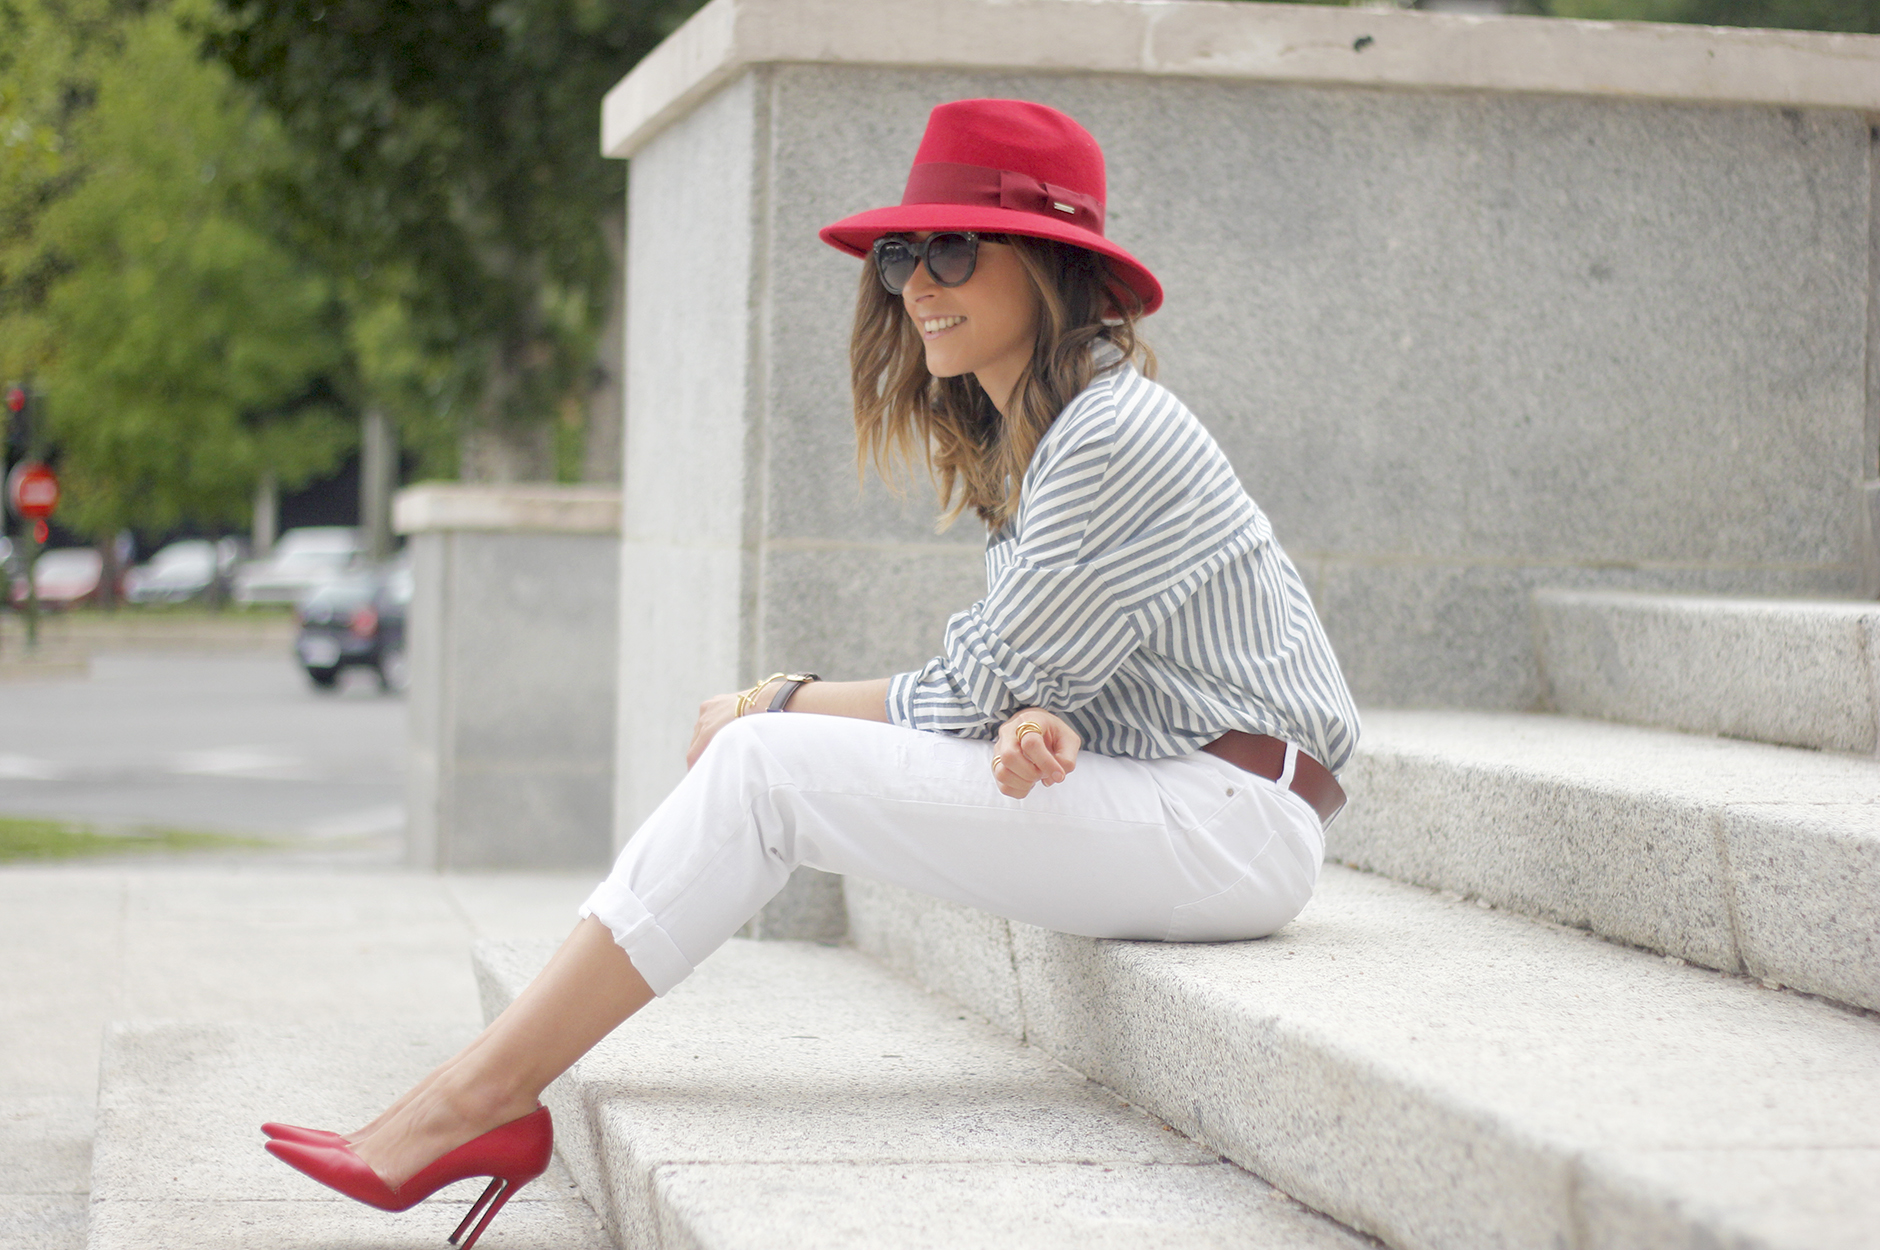 Red Hat Red Shoes White Jeans06